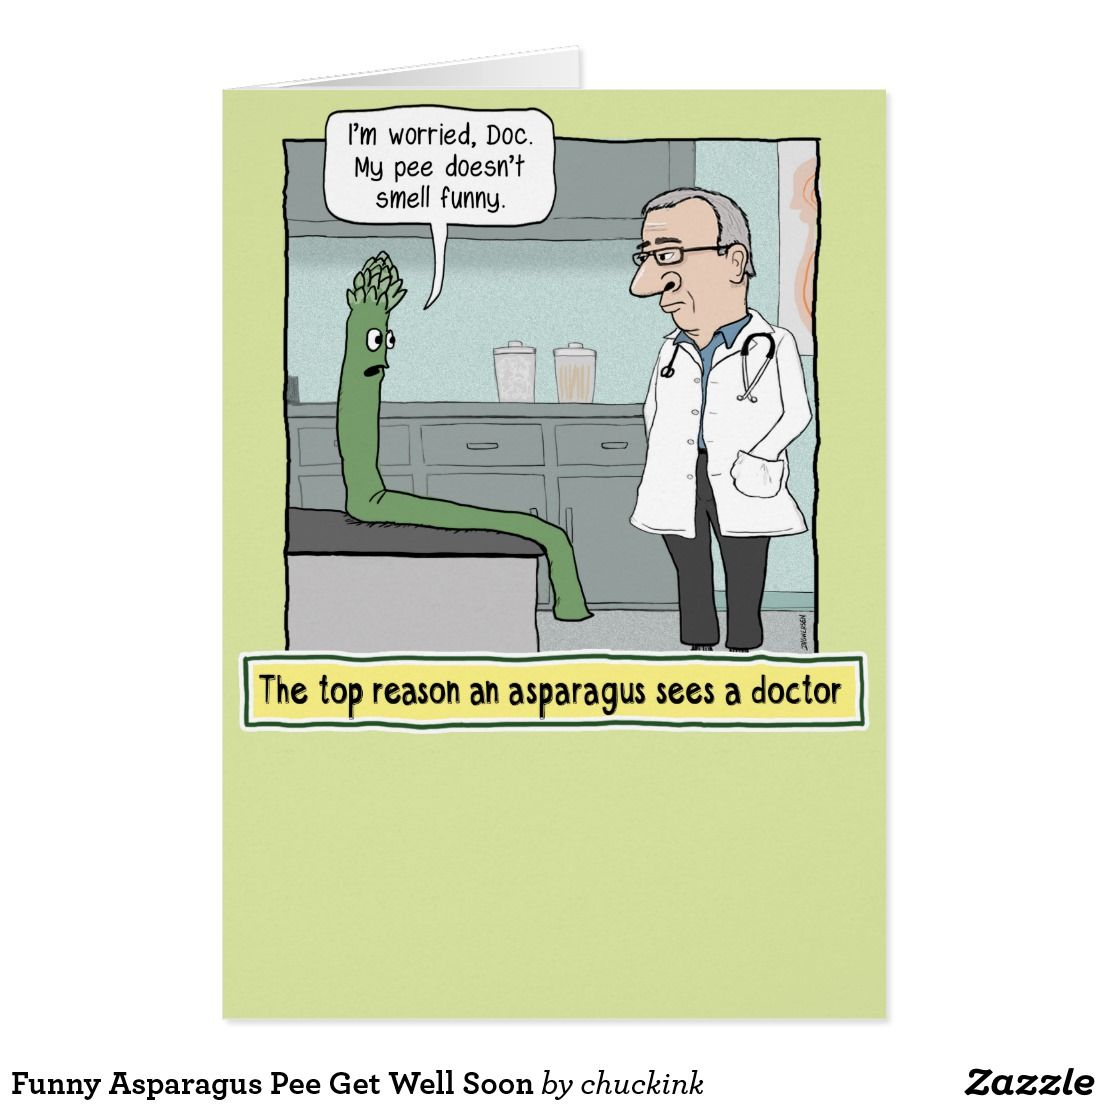 Funny asparagus pee get well soon card in